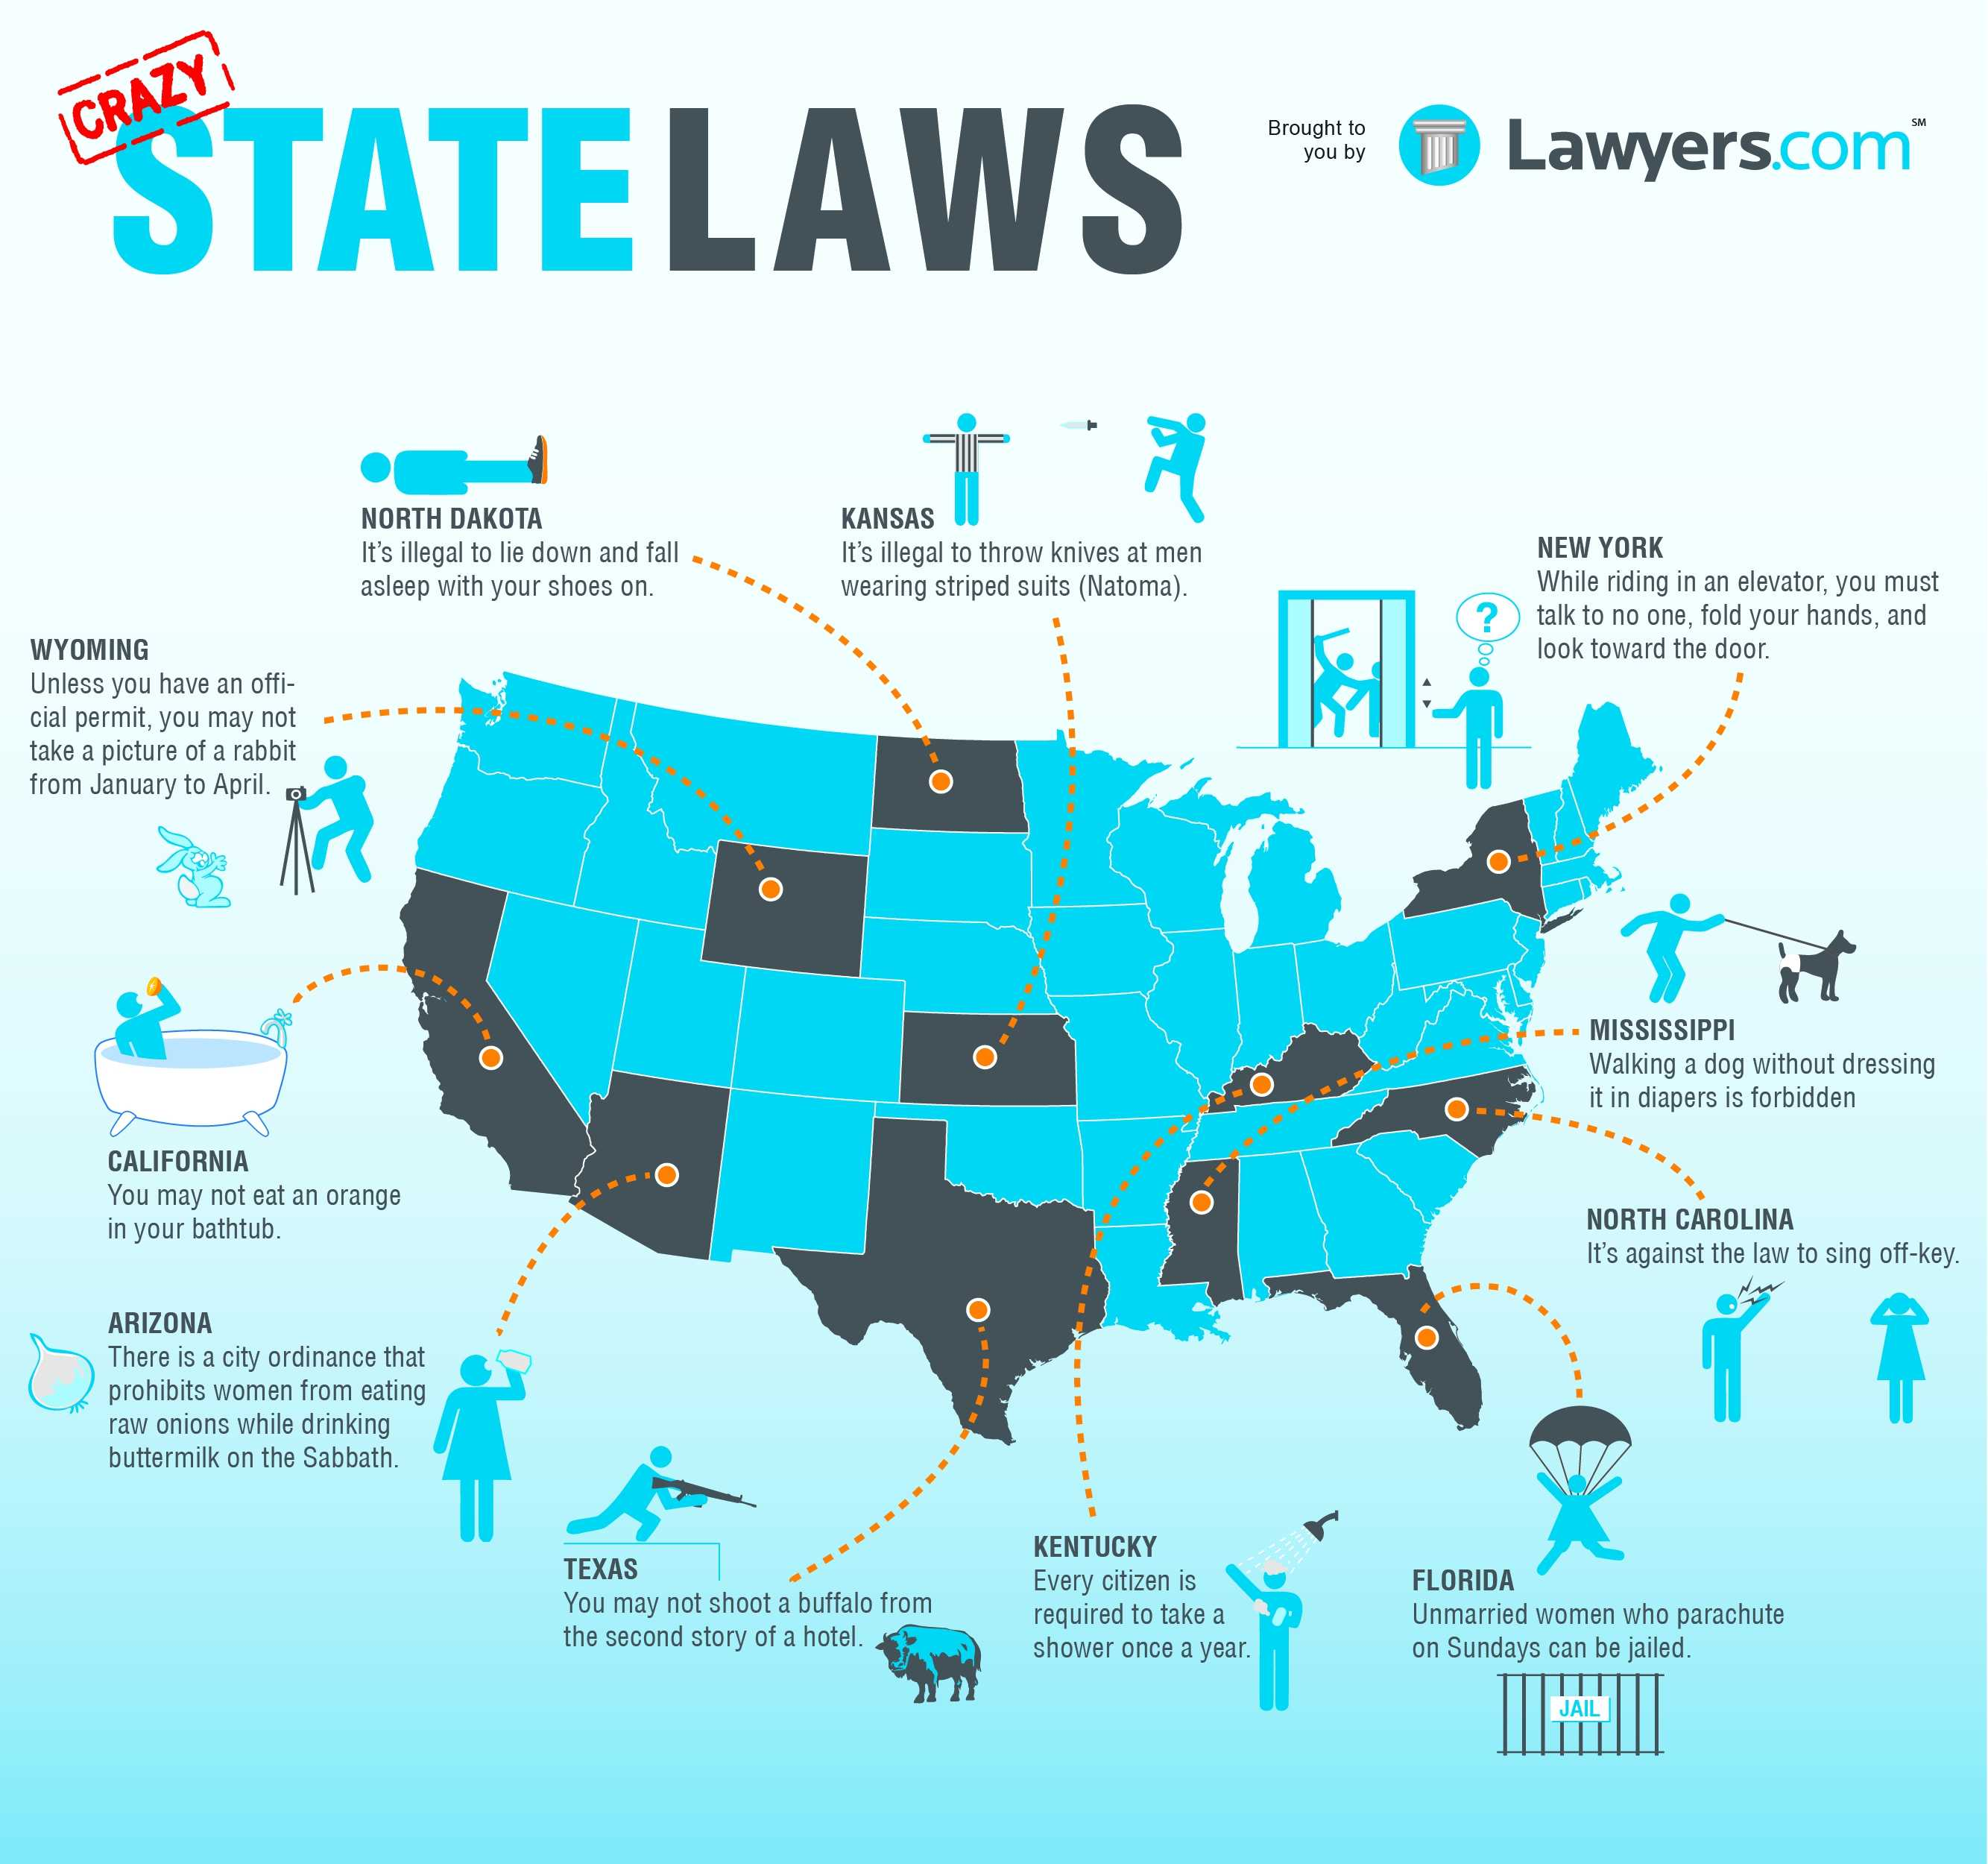 Eleven Crazy State Laws   InfoGraphic   The Fact Site